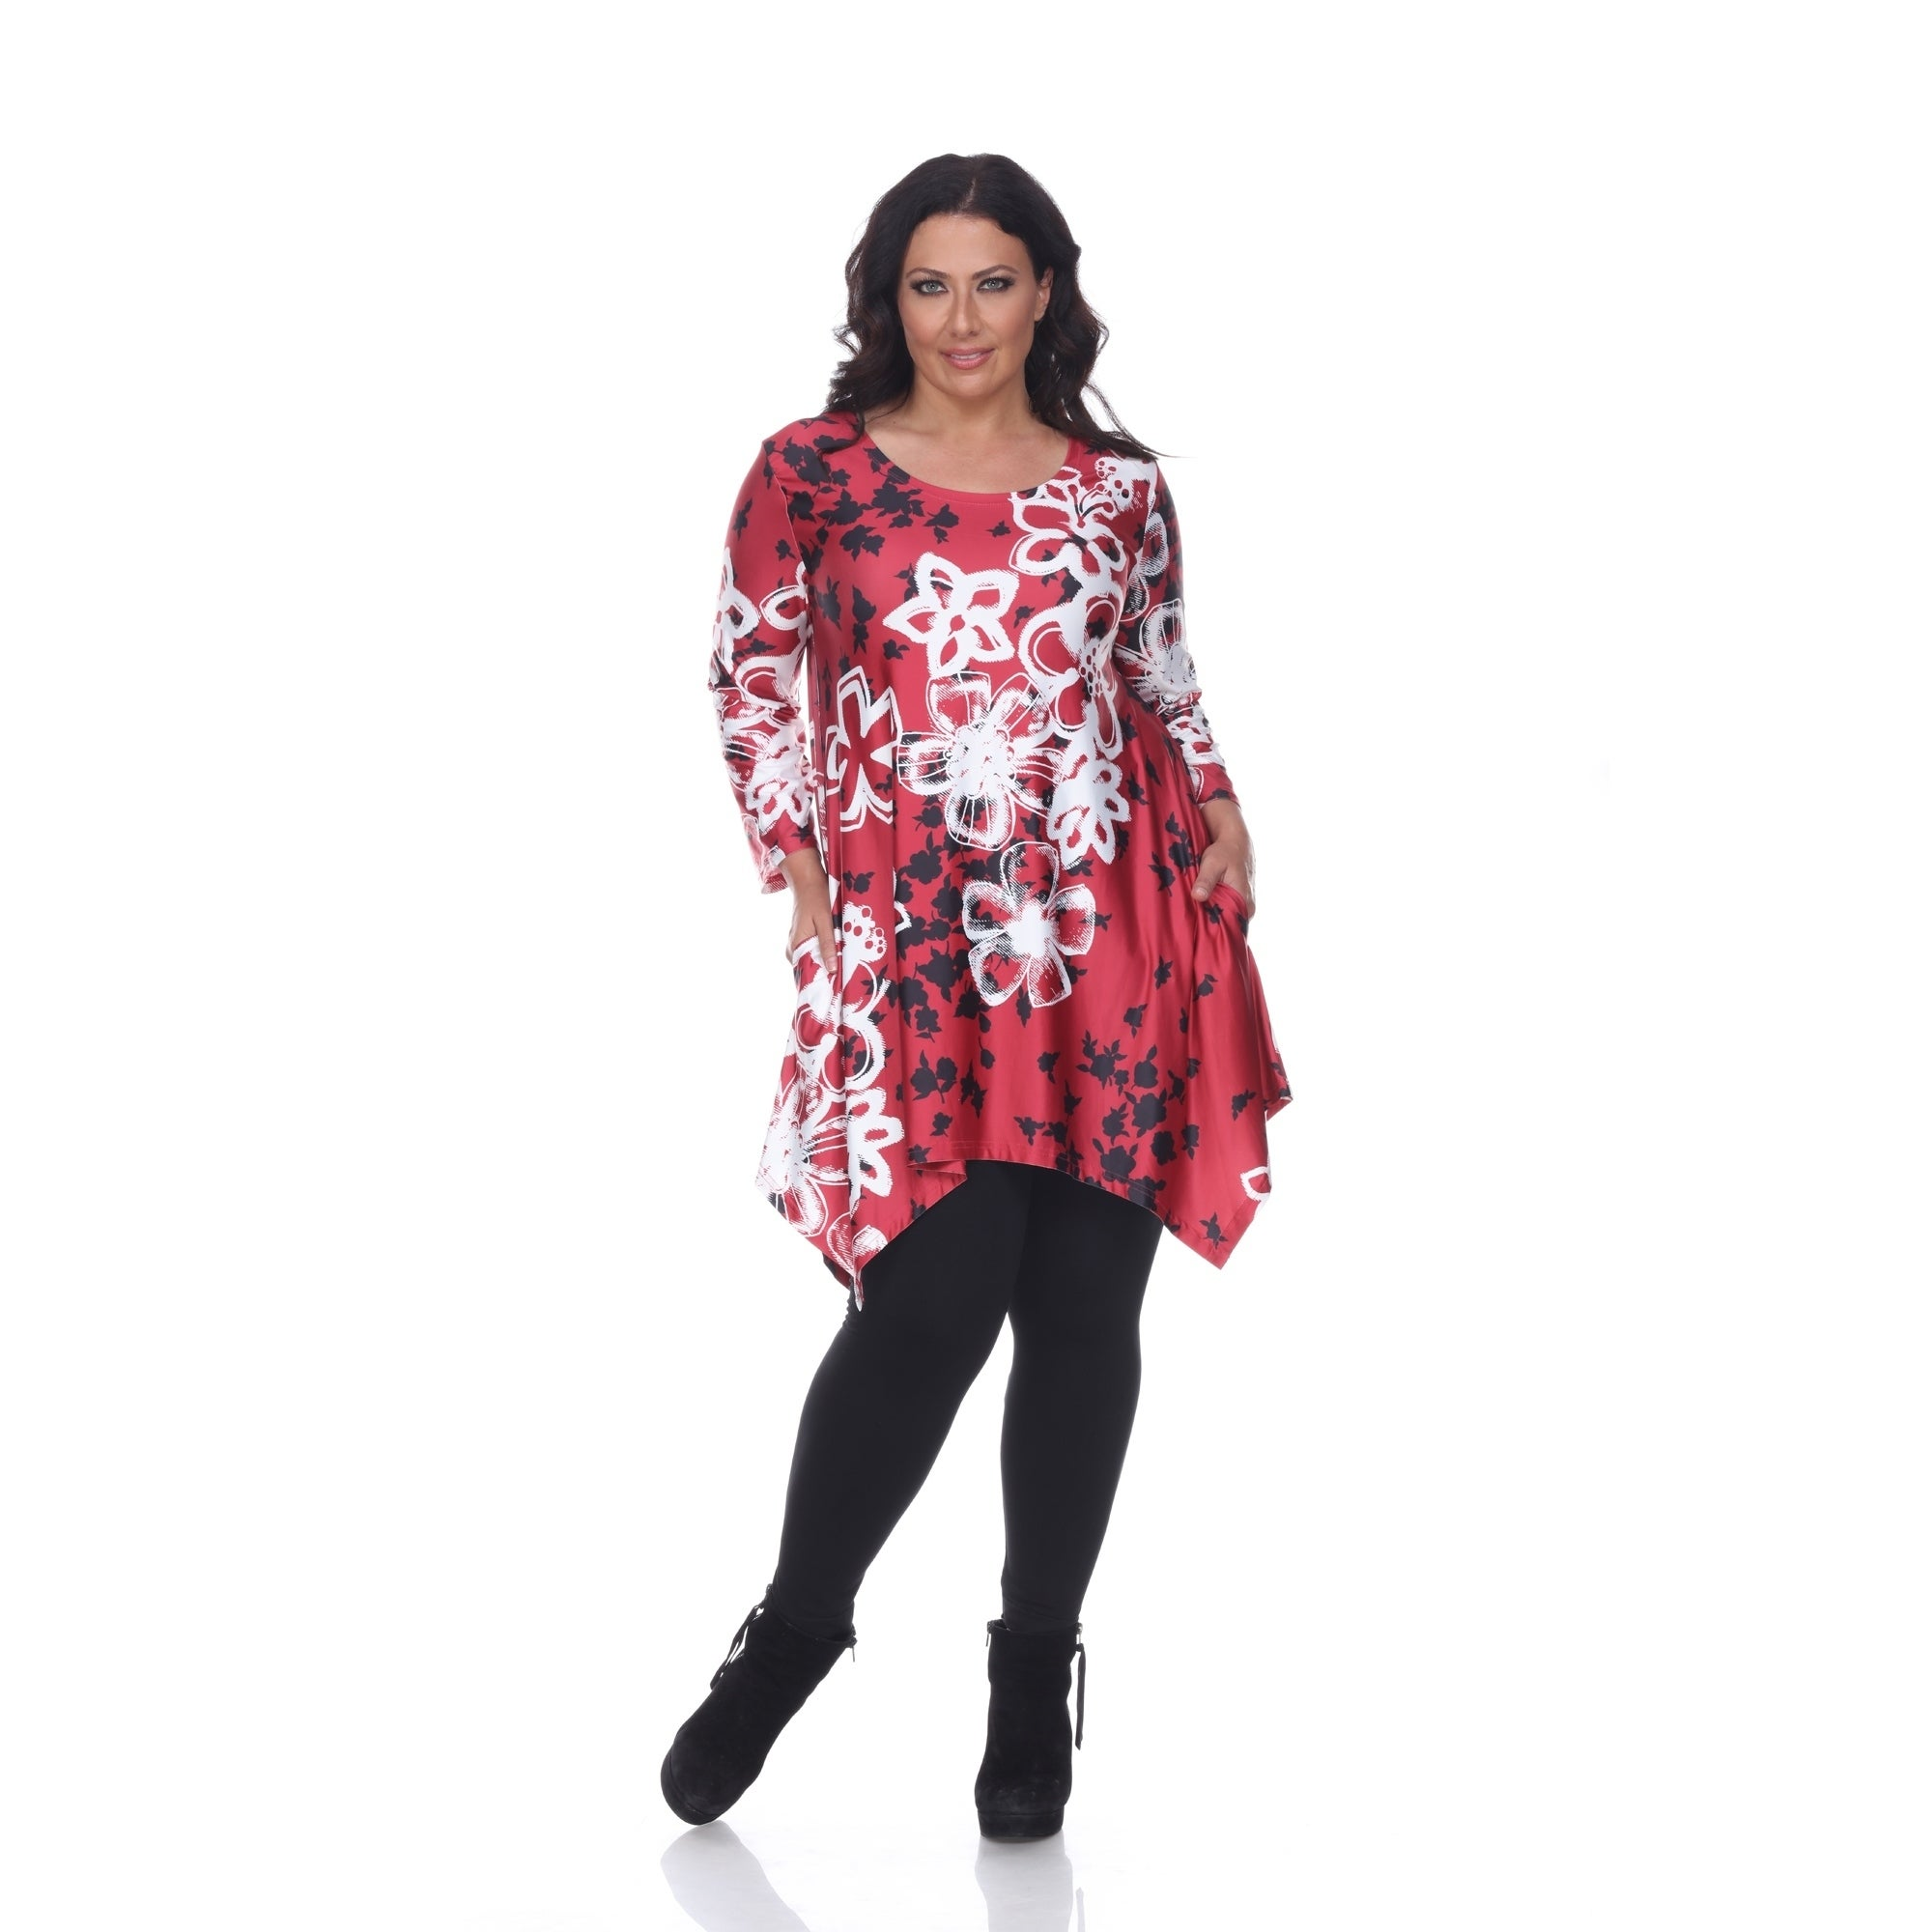 Charmant Shop White Mark Plus Size U0027Iolau0027 Tunic   Free Shipping On Orders Over $45    Overstock.com   17373749